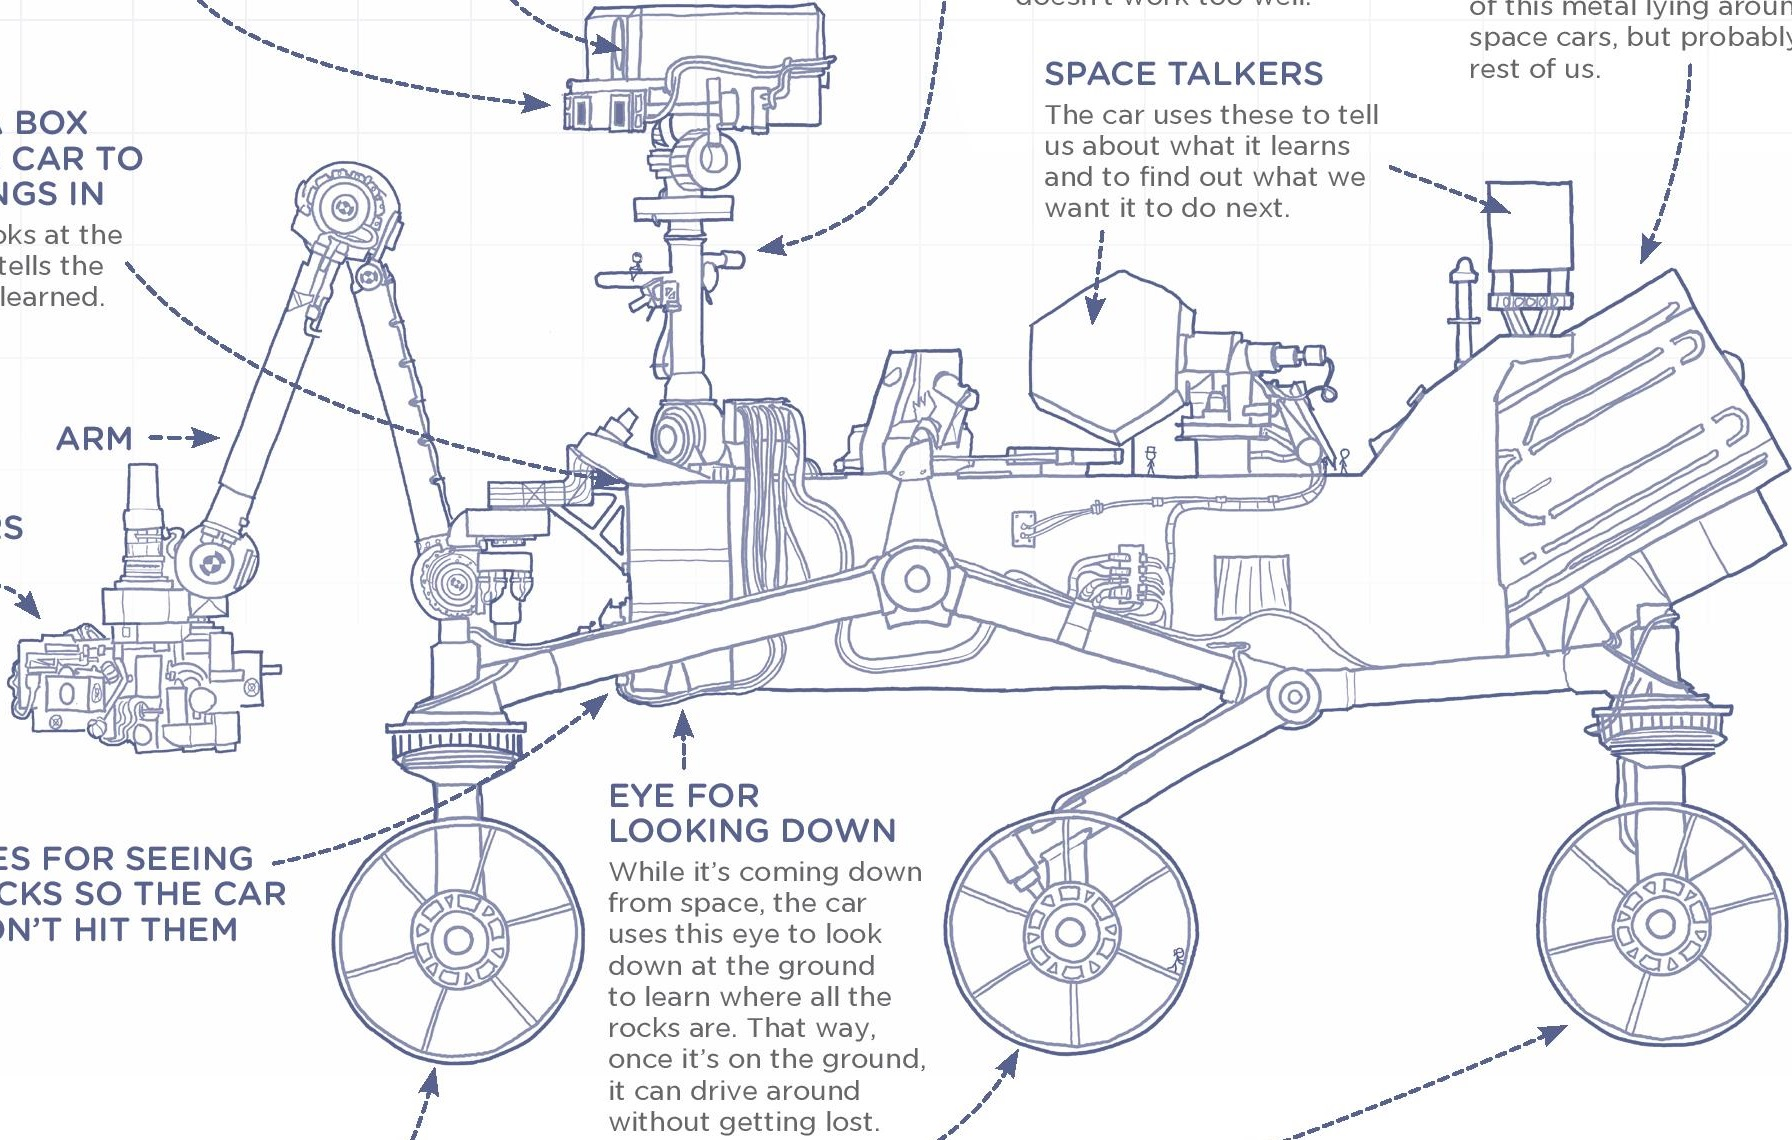 Clever Illustrations Dub NASA's Mars Rover Curiosity a 'Red World Car'